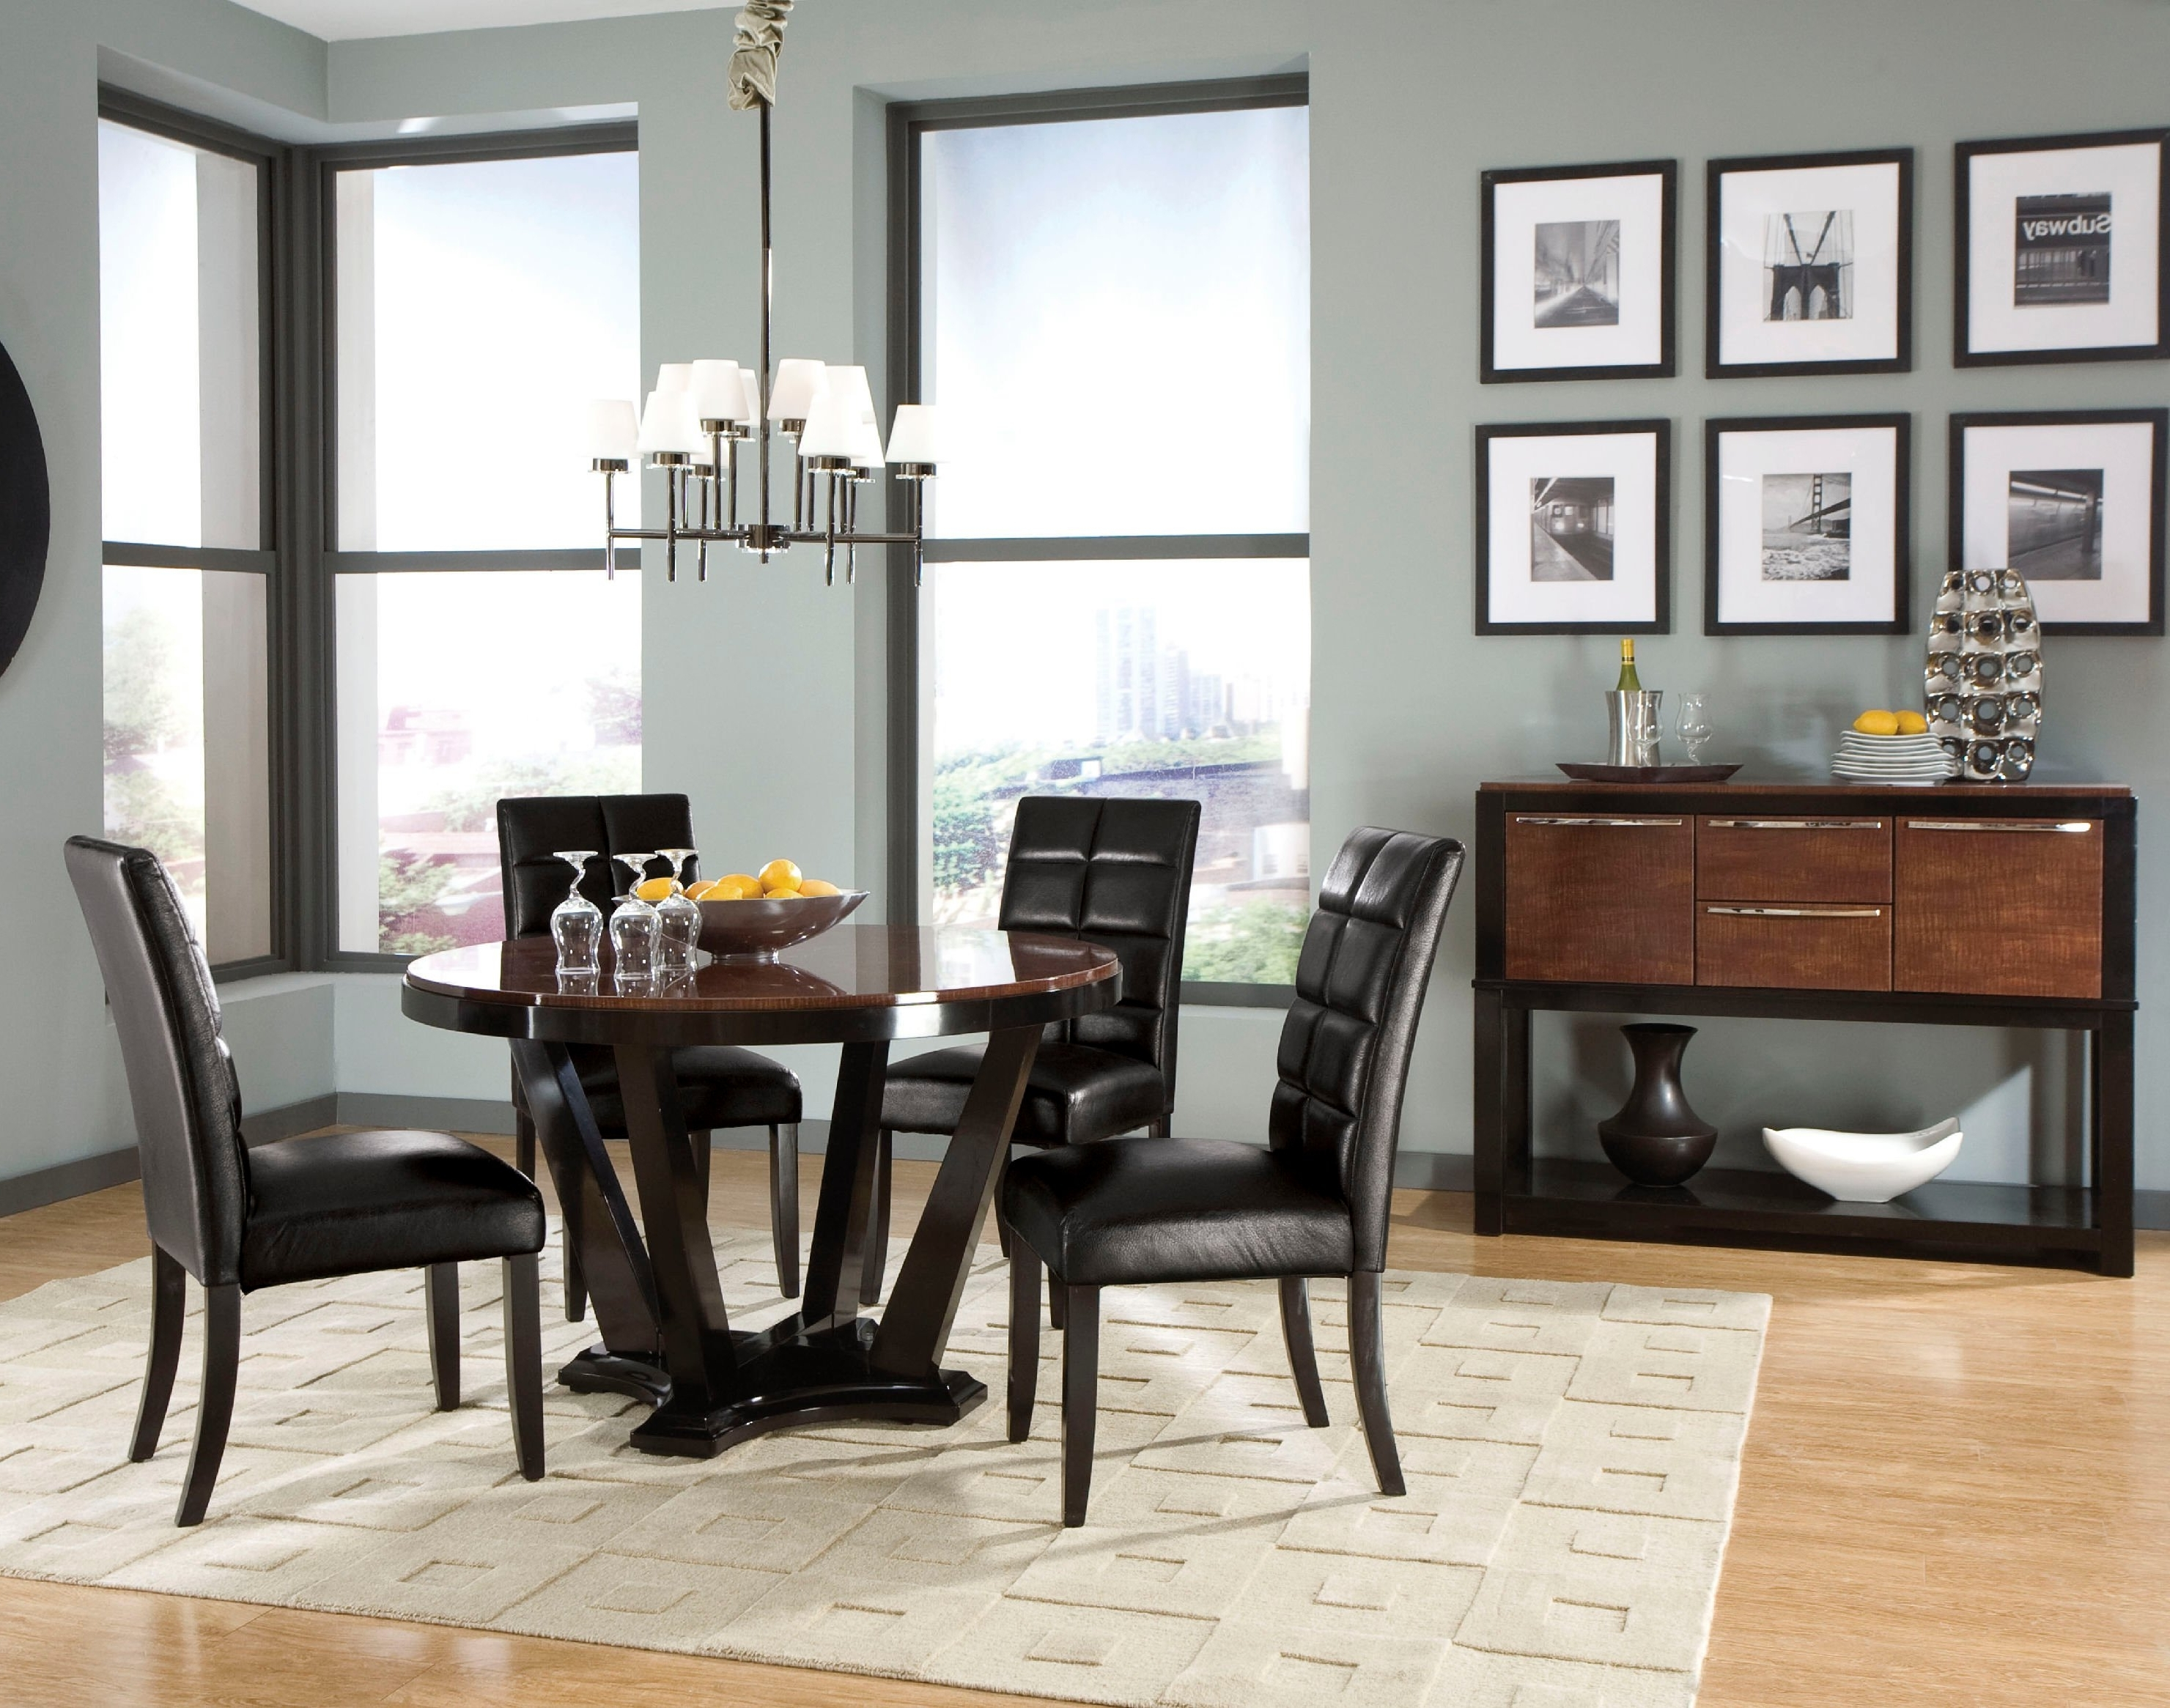 Solid Dark Wood Dining Tables Within Favorite Remarkable Round Two Tone High Gloss Finish Mahogany Wood (View 13 of 25)